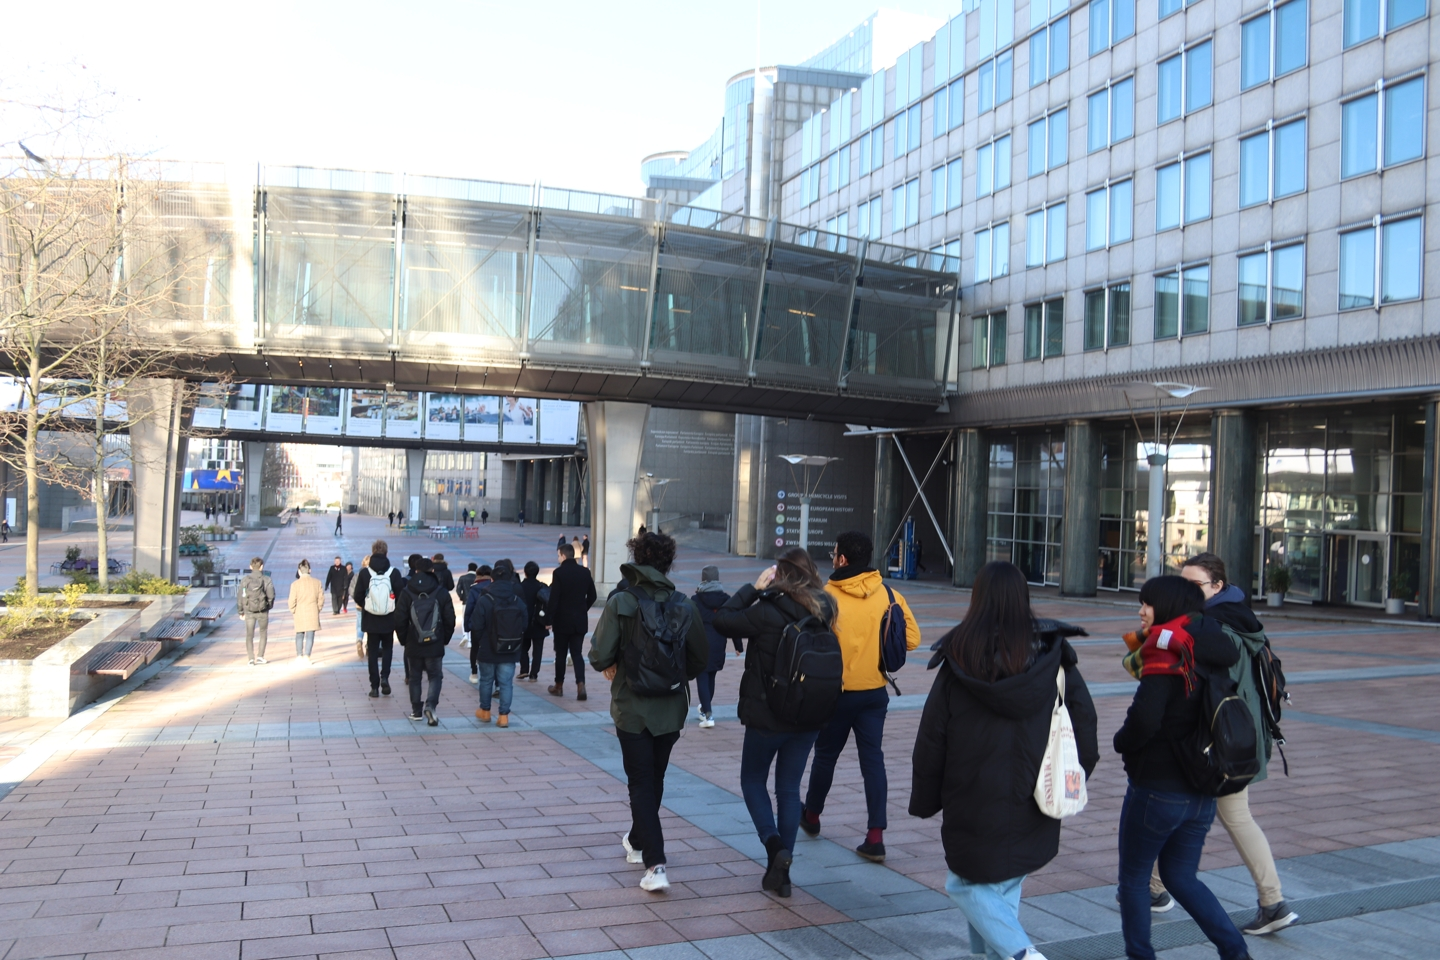 Back view of a group of students walking.